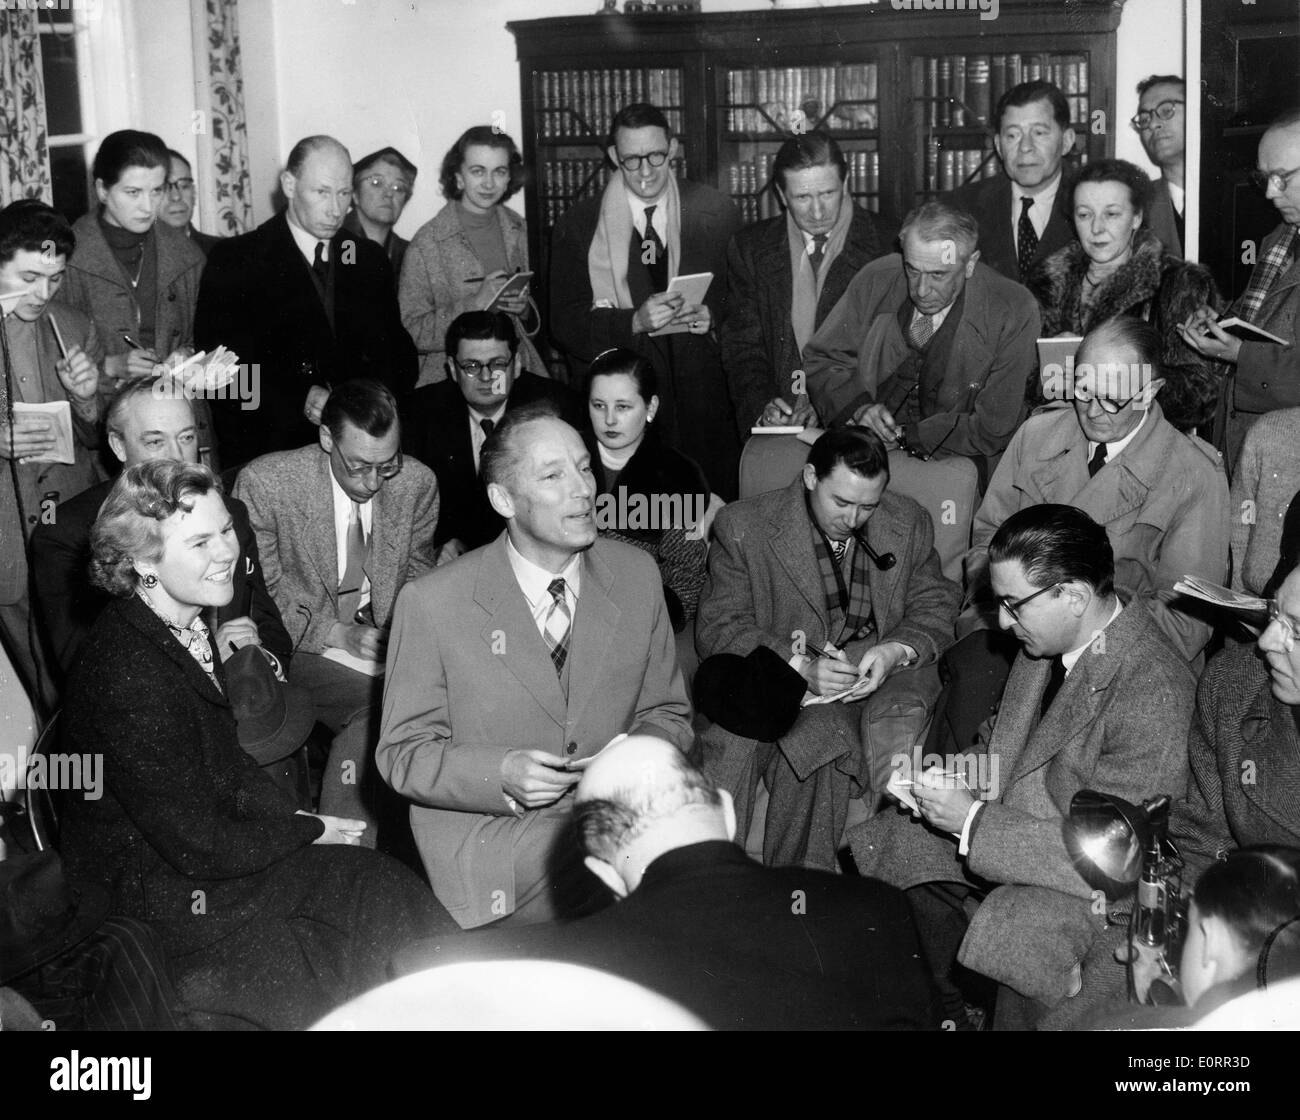 Architect Hermann Field holds press conference - Stock Image